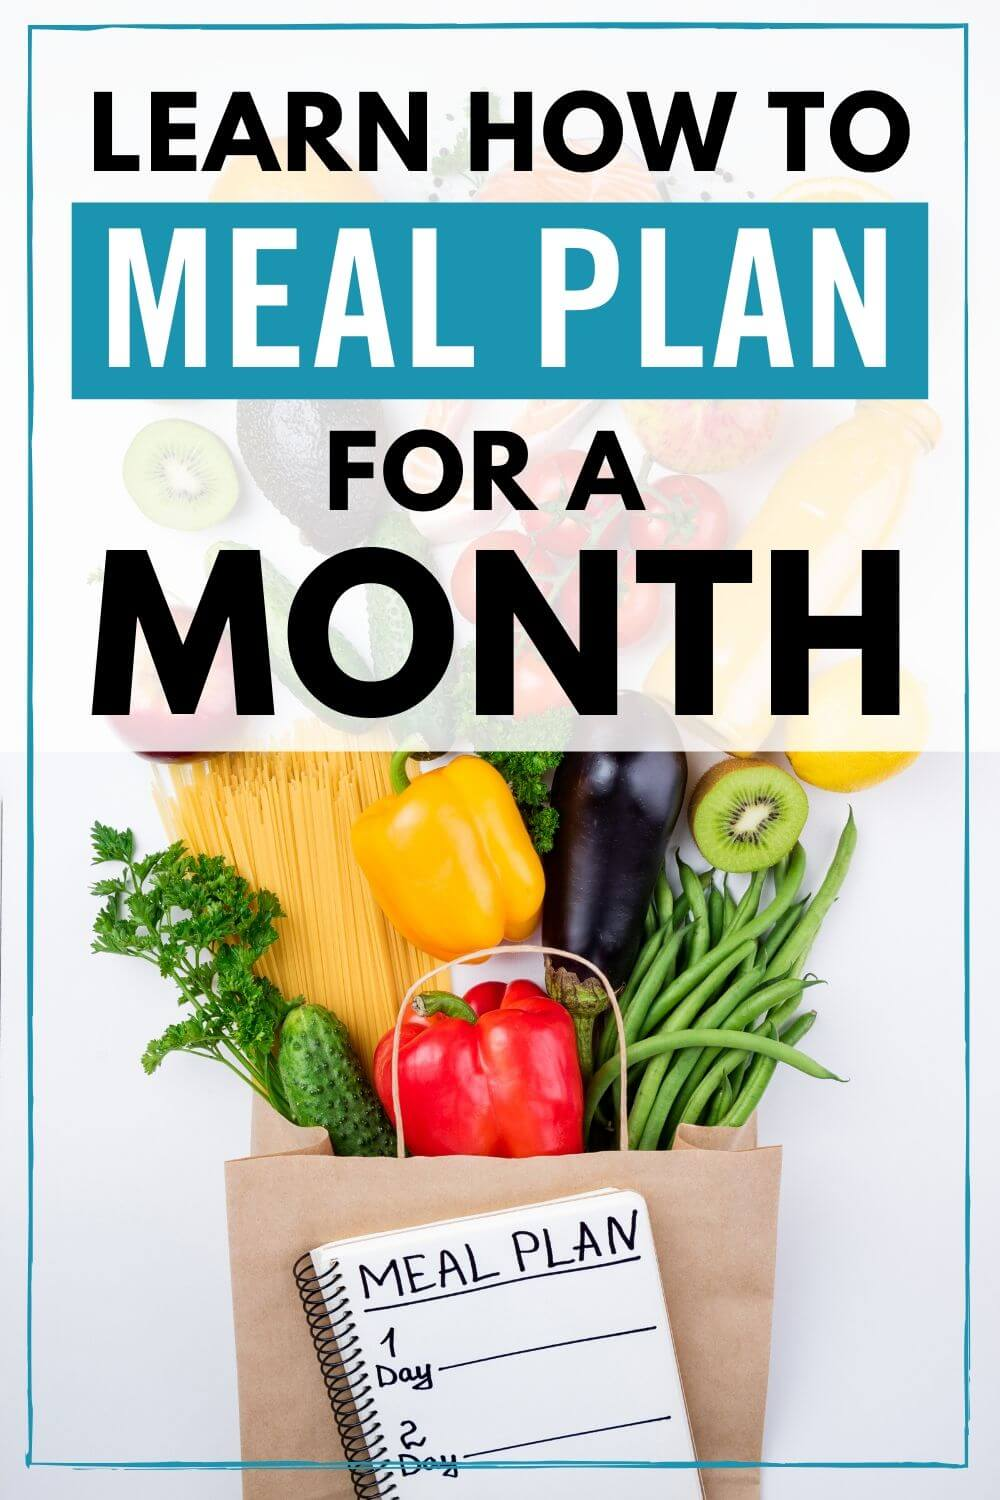 Meal planning is key to save money on groceries. Learning how to use monthly meal planning will stretch your grocery budget even further. Menu planning is simple for a monthly or weekly basis. Get your free printable worksheet and grocery lists.